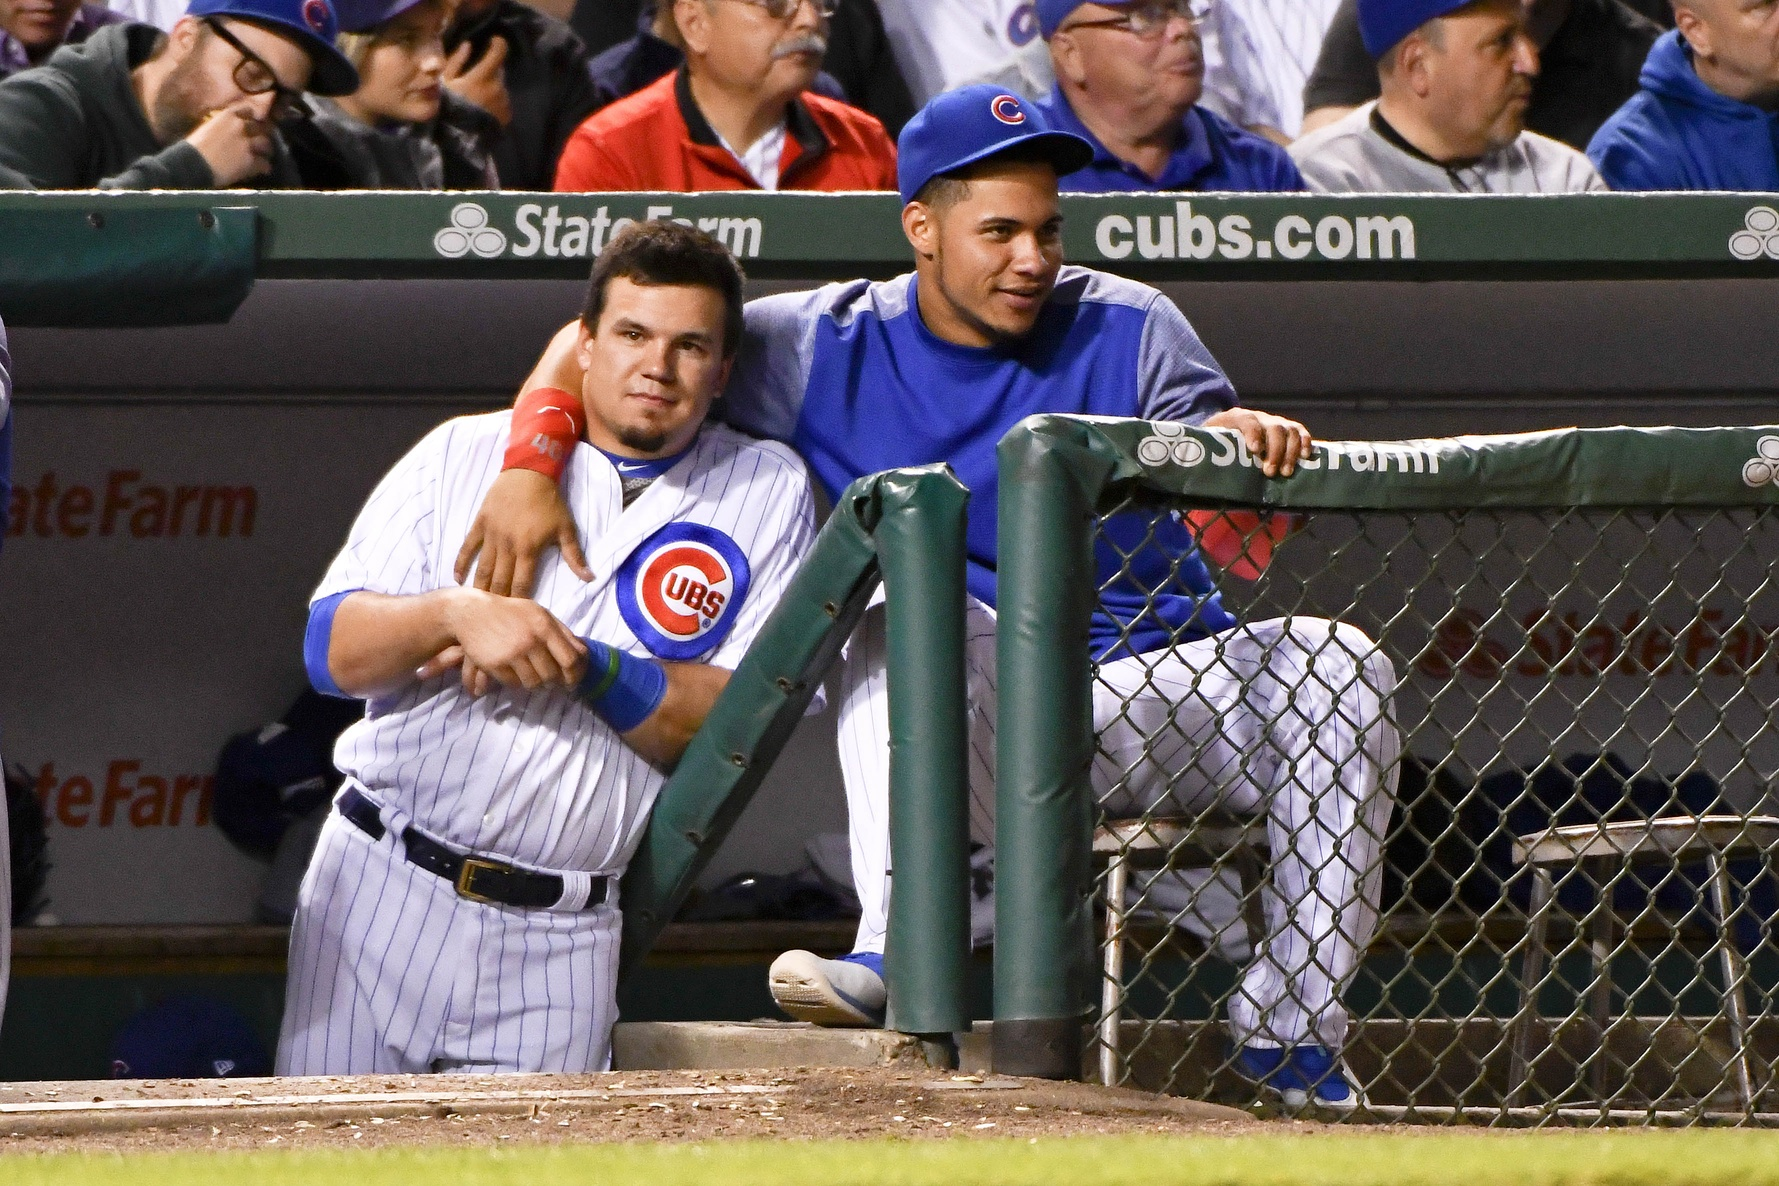 Cubs sent Kyle Schwarber to Triple-A for him to relax